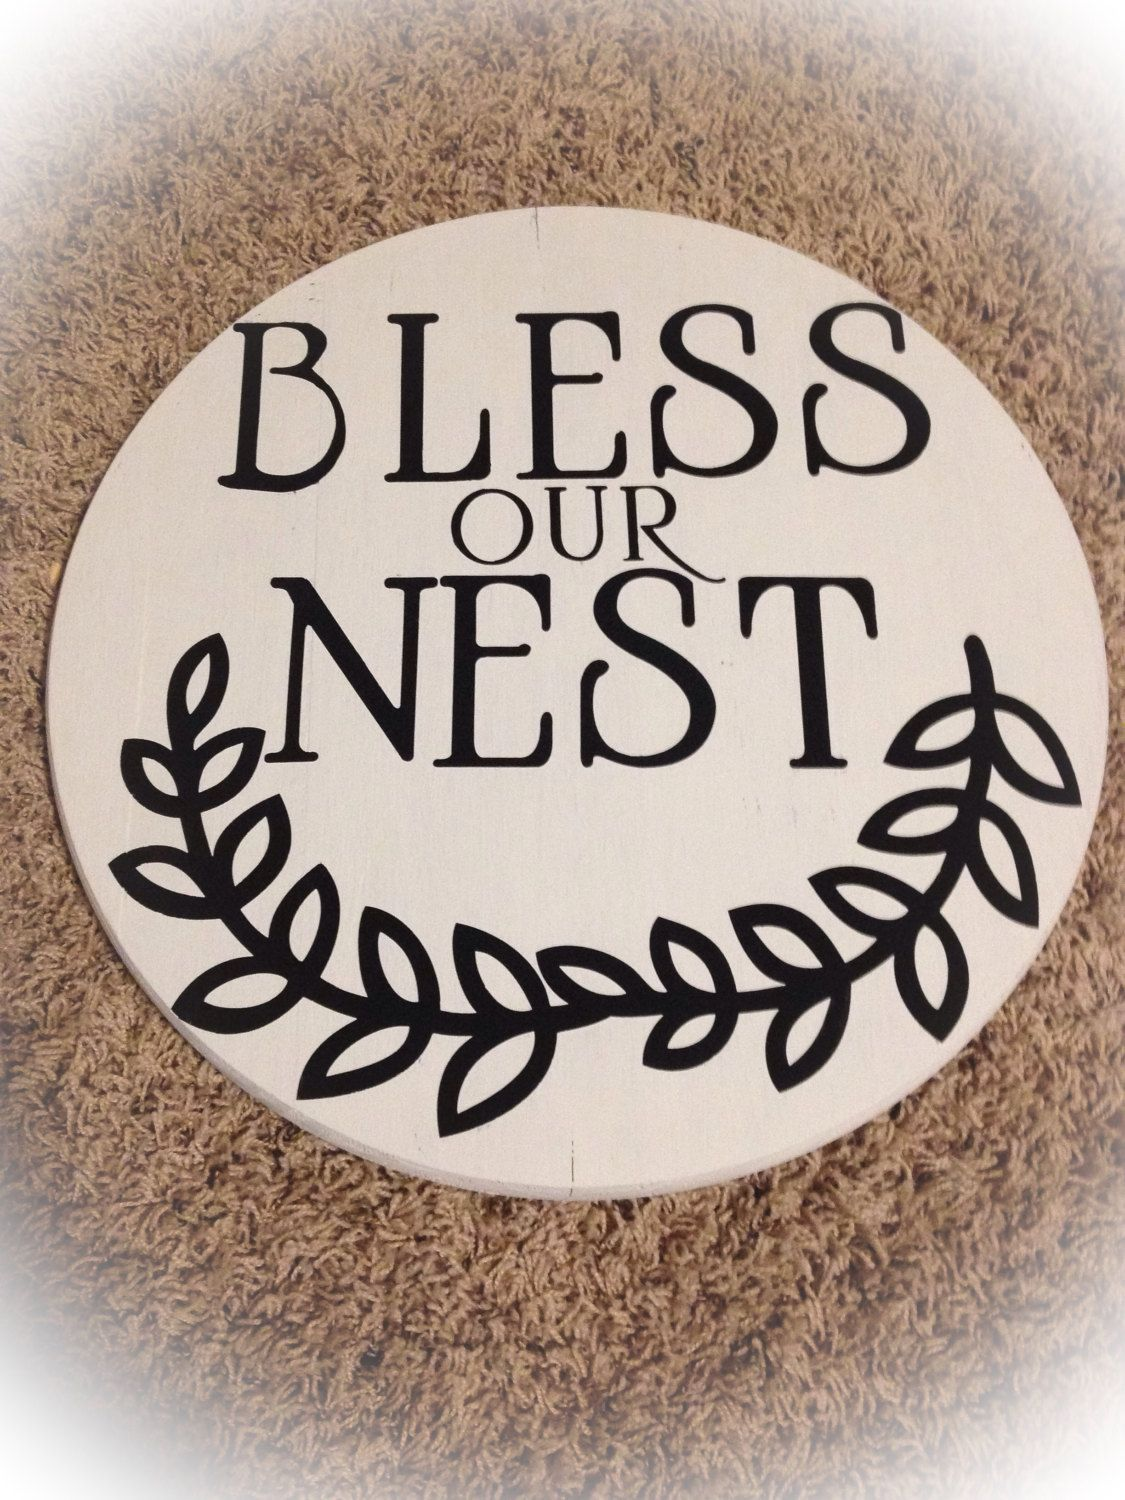 Bless Our Nest- Round Sign by NorthernPalletDesign on Etsy